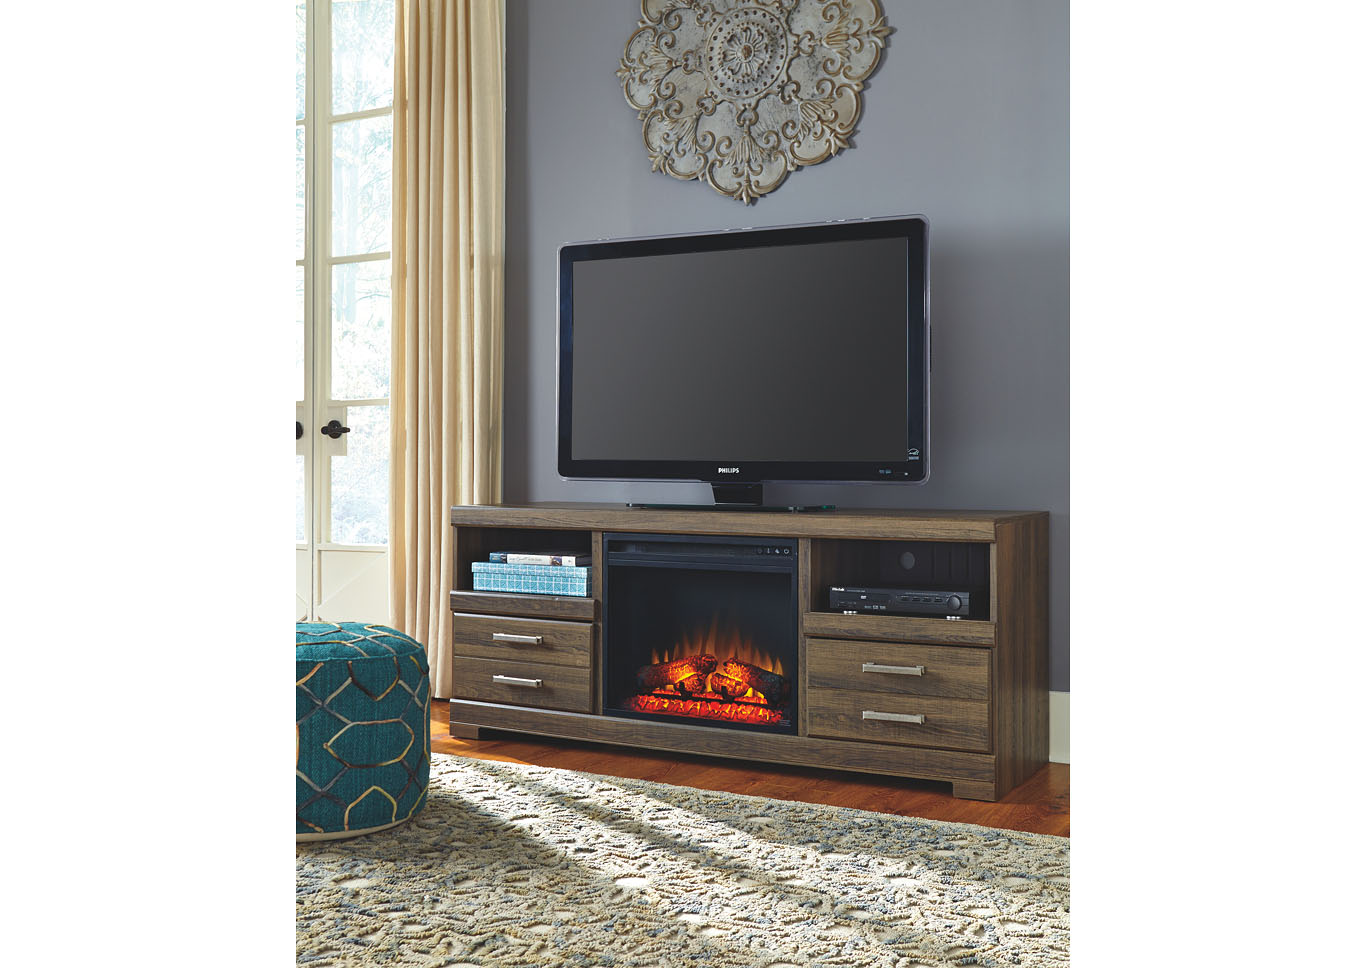 Frantin Large TV Stand w/ LED Fireplace Insert,ABF Signature Design by Ashley